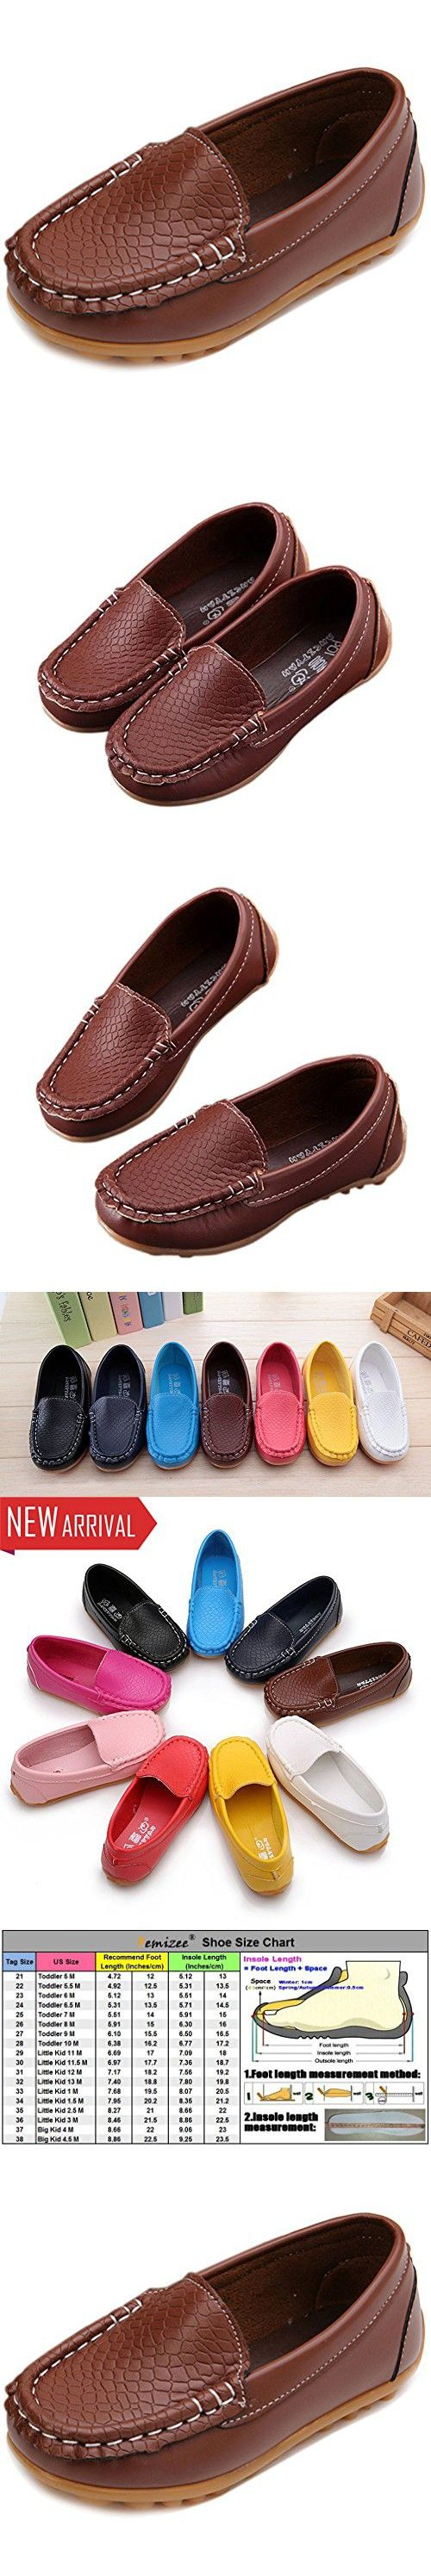 Femizee Casual Toddler Kid Boys Girls Loafers Shoes,Brown,9 M US Toddler